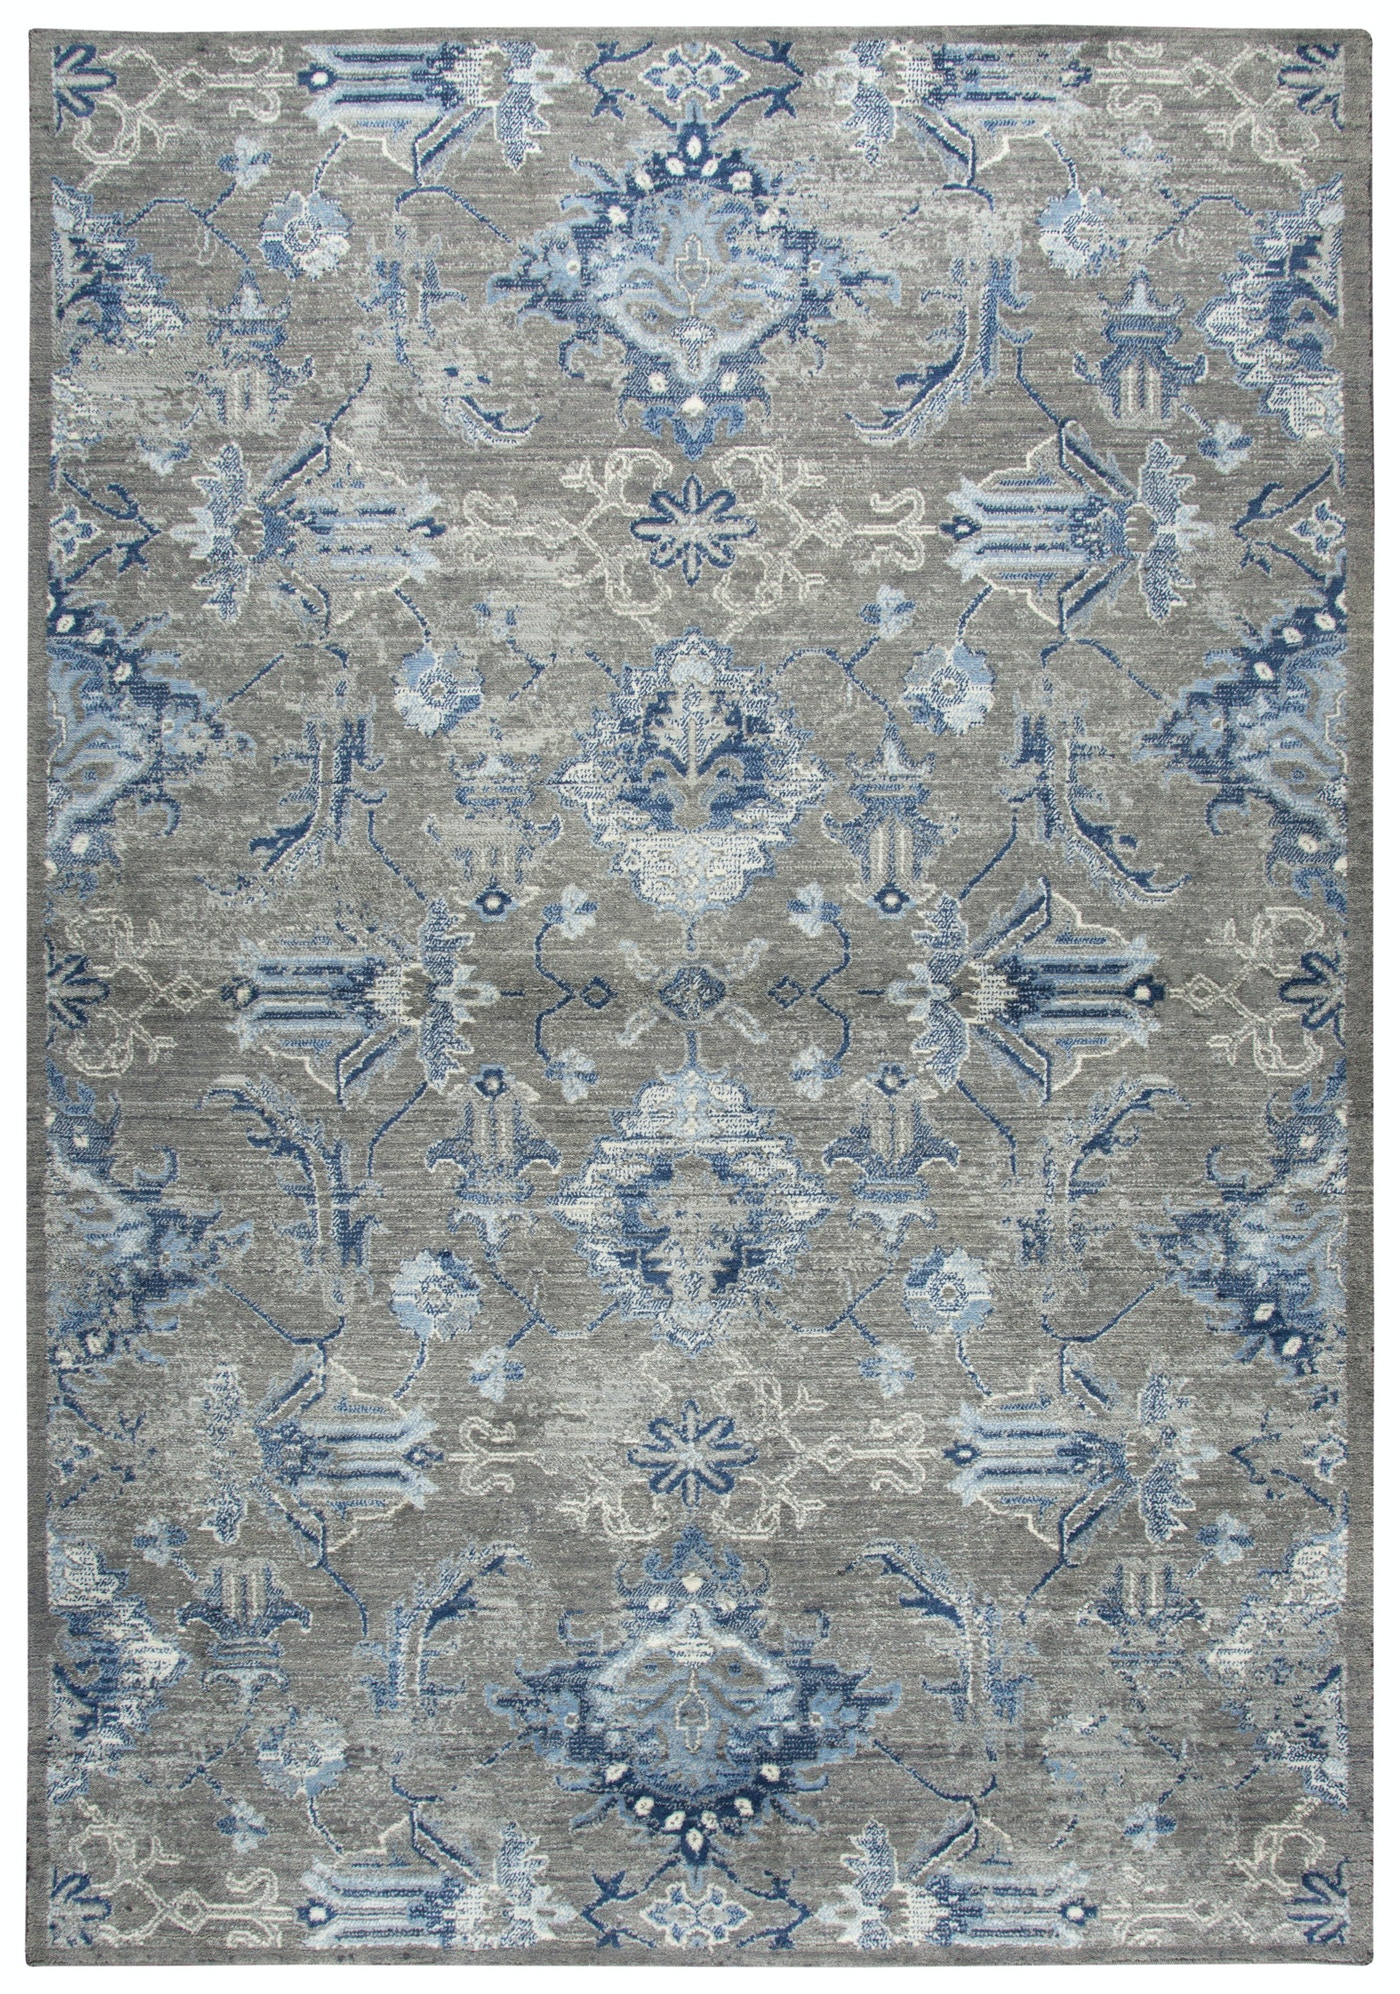 Famous Rizzy Home Accessories Gossamer Gray-Blue Rug - 8X10 055924  LA94